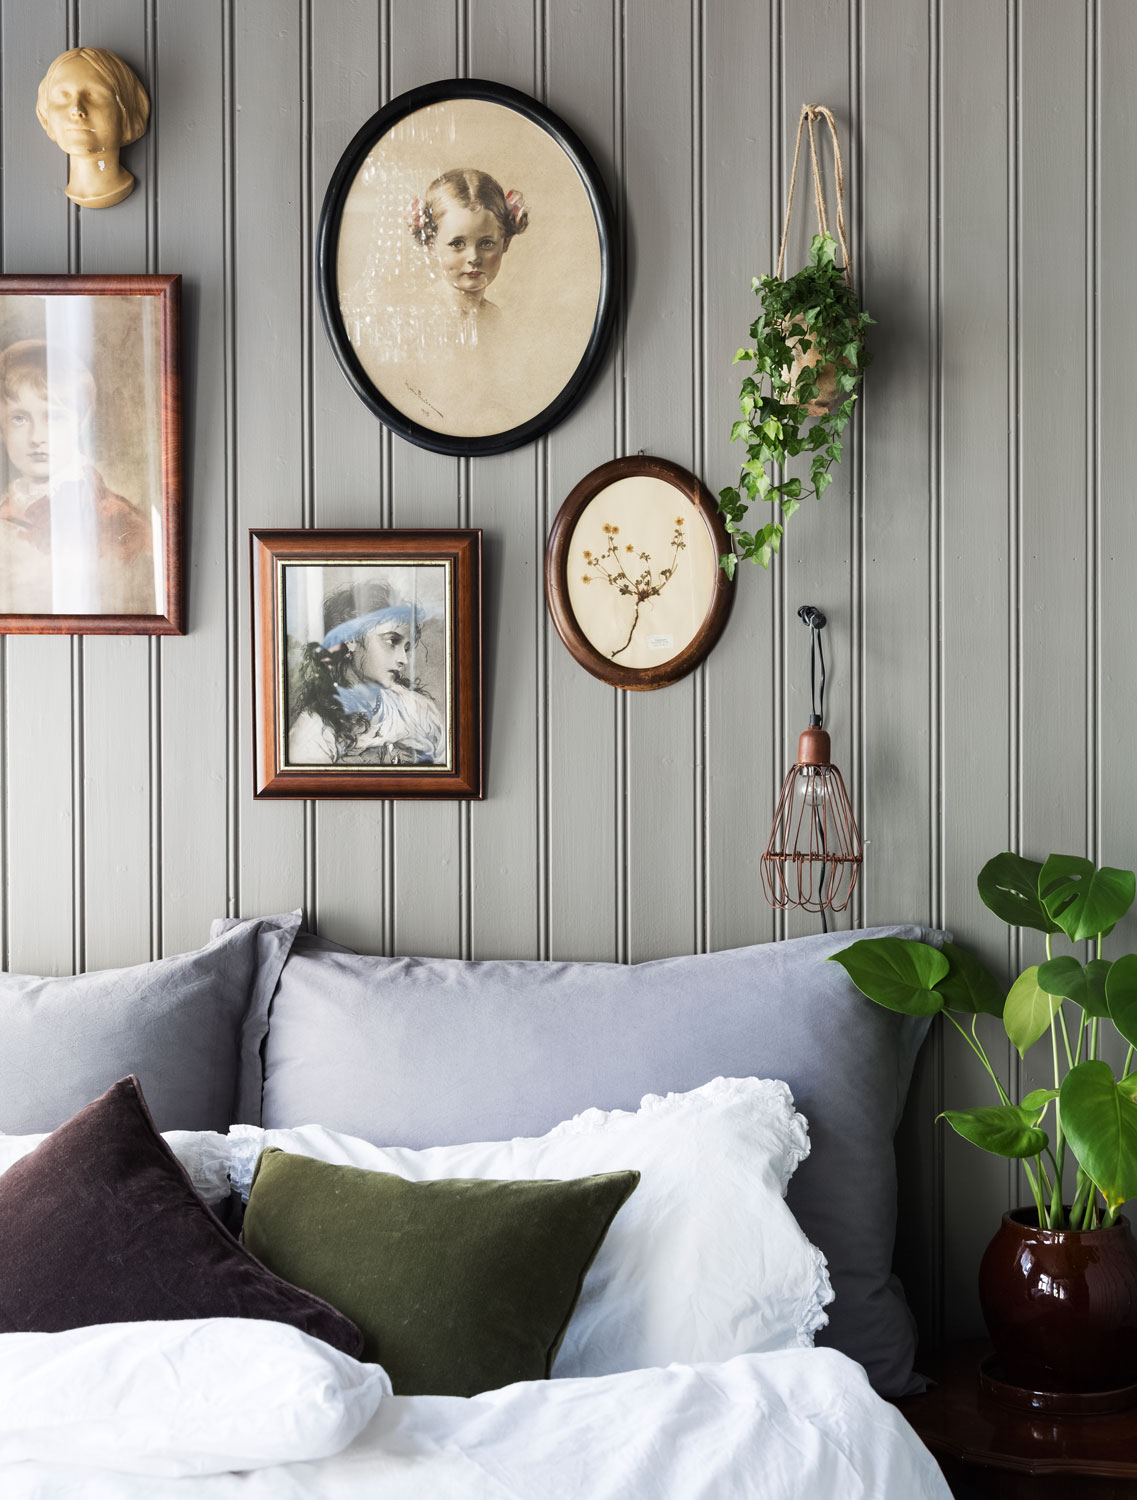 charming rustic scandinavian apartment, wood paneling, white floor, art, bedroom